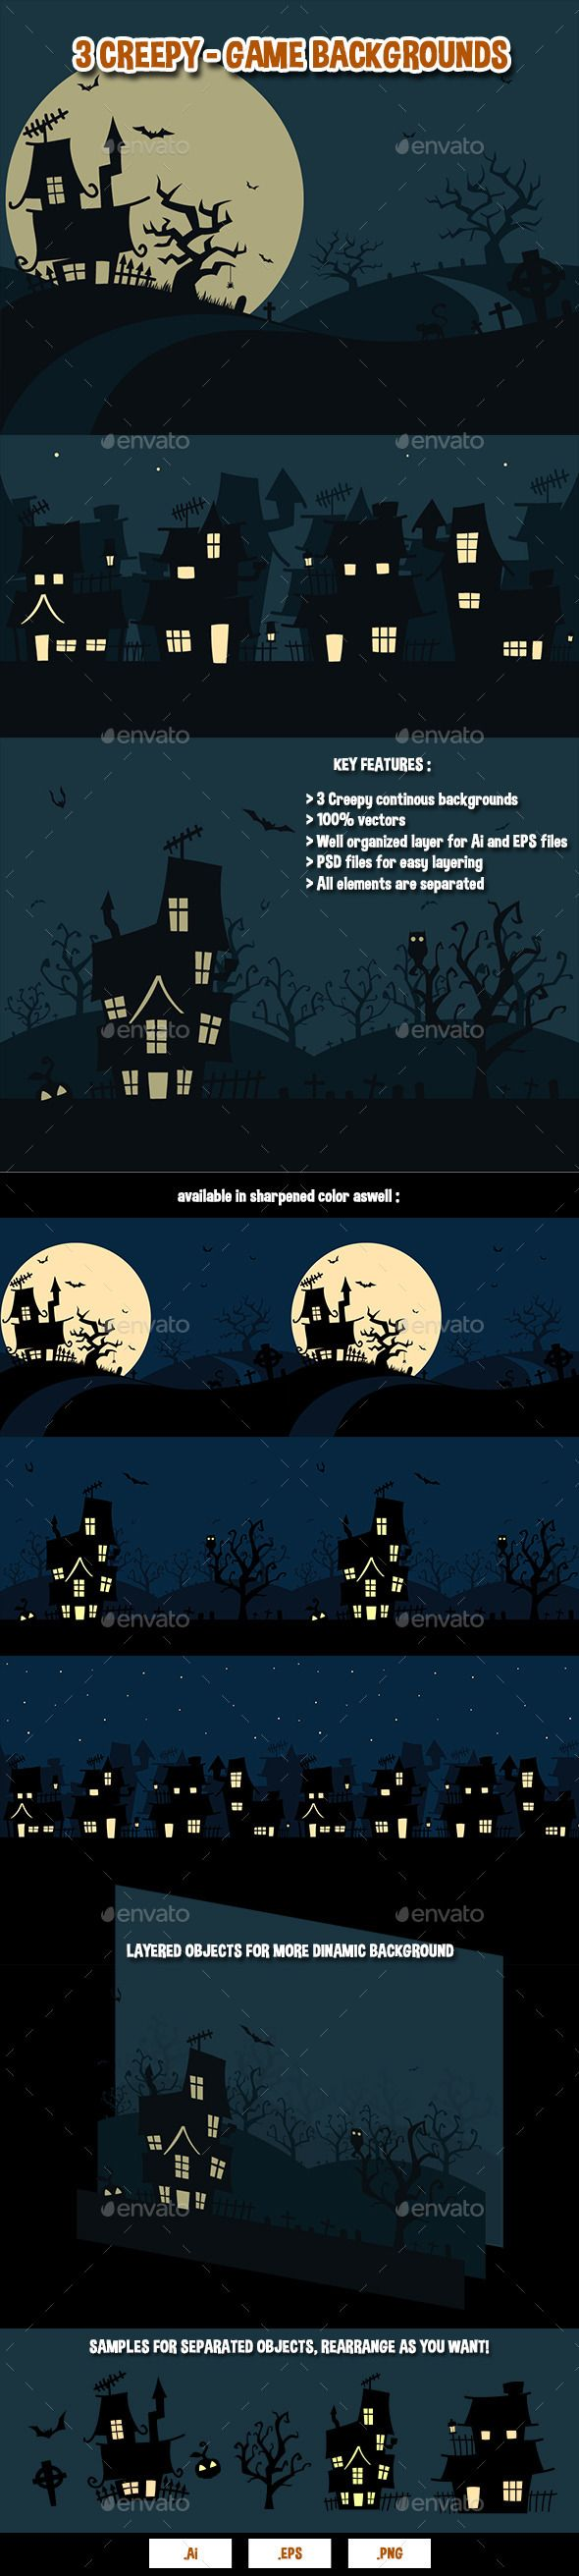 3 Creepy  Game Backgrounds — Photoshop PSD #vector #scary • Download here → https://graphicriver.net/item/3-creepy-game-backgrounds/9213560?ref=pxcr